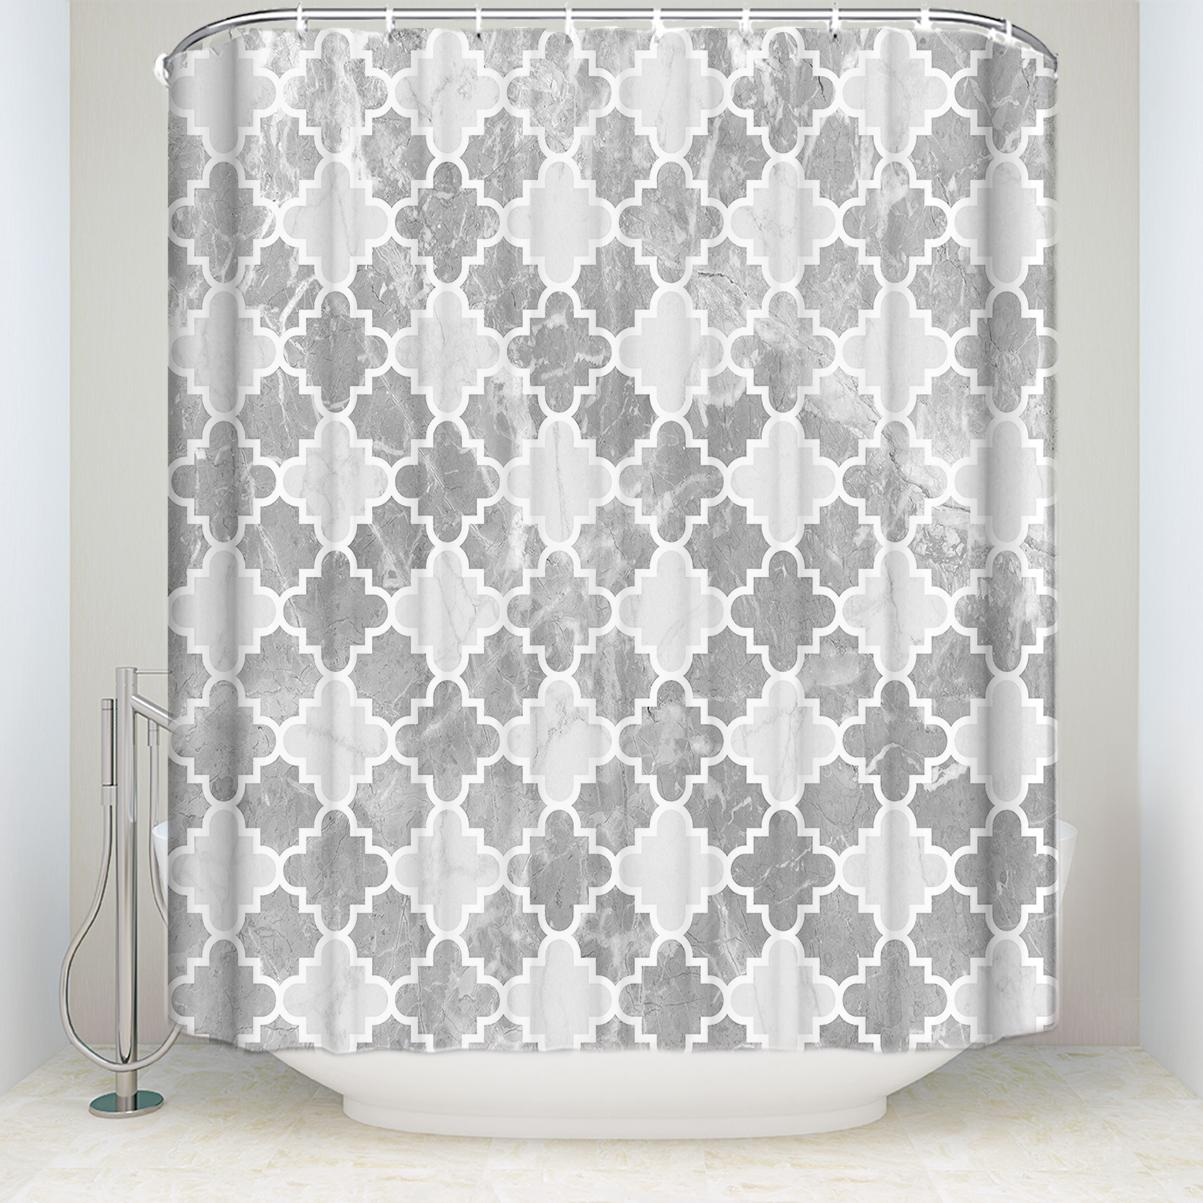 2019 Waterproof Vintage Moroccan Pattern Shower Curtain With Hooks Polyester Fabric Geometric Bathroom Curtains For Home Decorations From Icelly